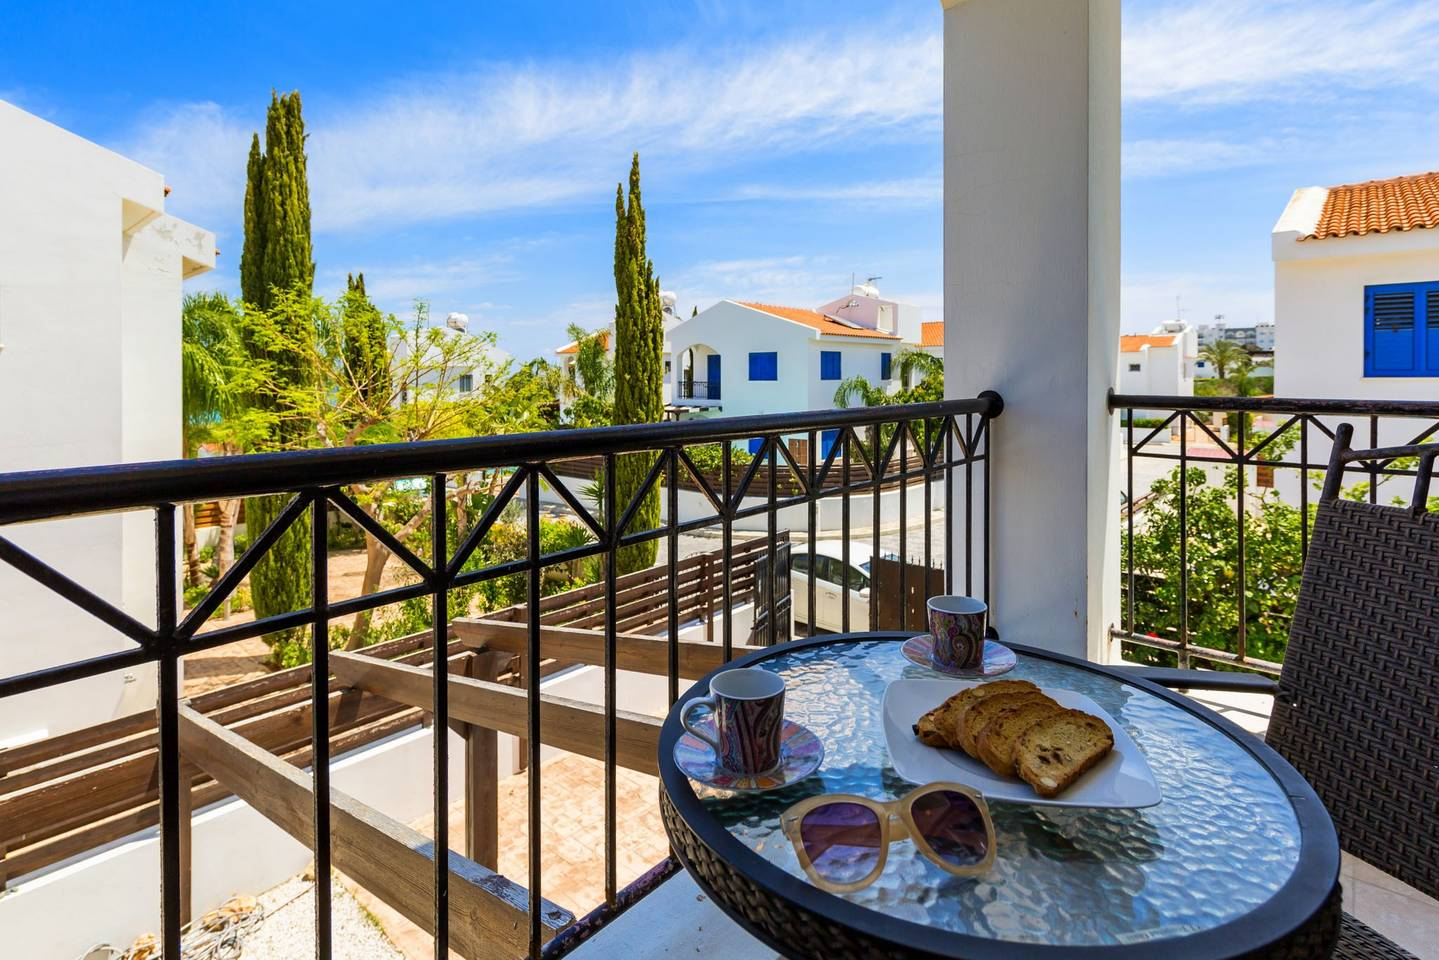 Apartment Villa Evace - 3 Bedroom Villa with Private Pool - 100m from Beach photo 18516344